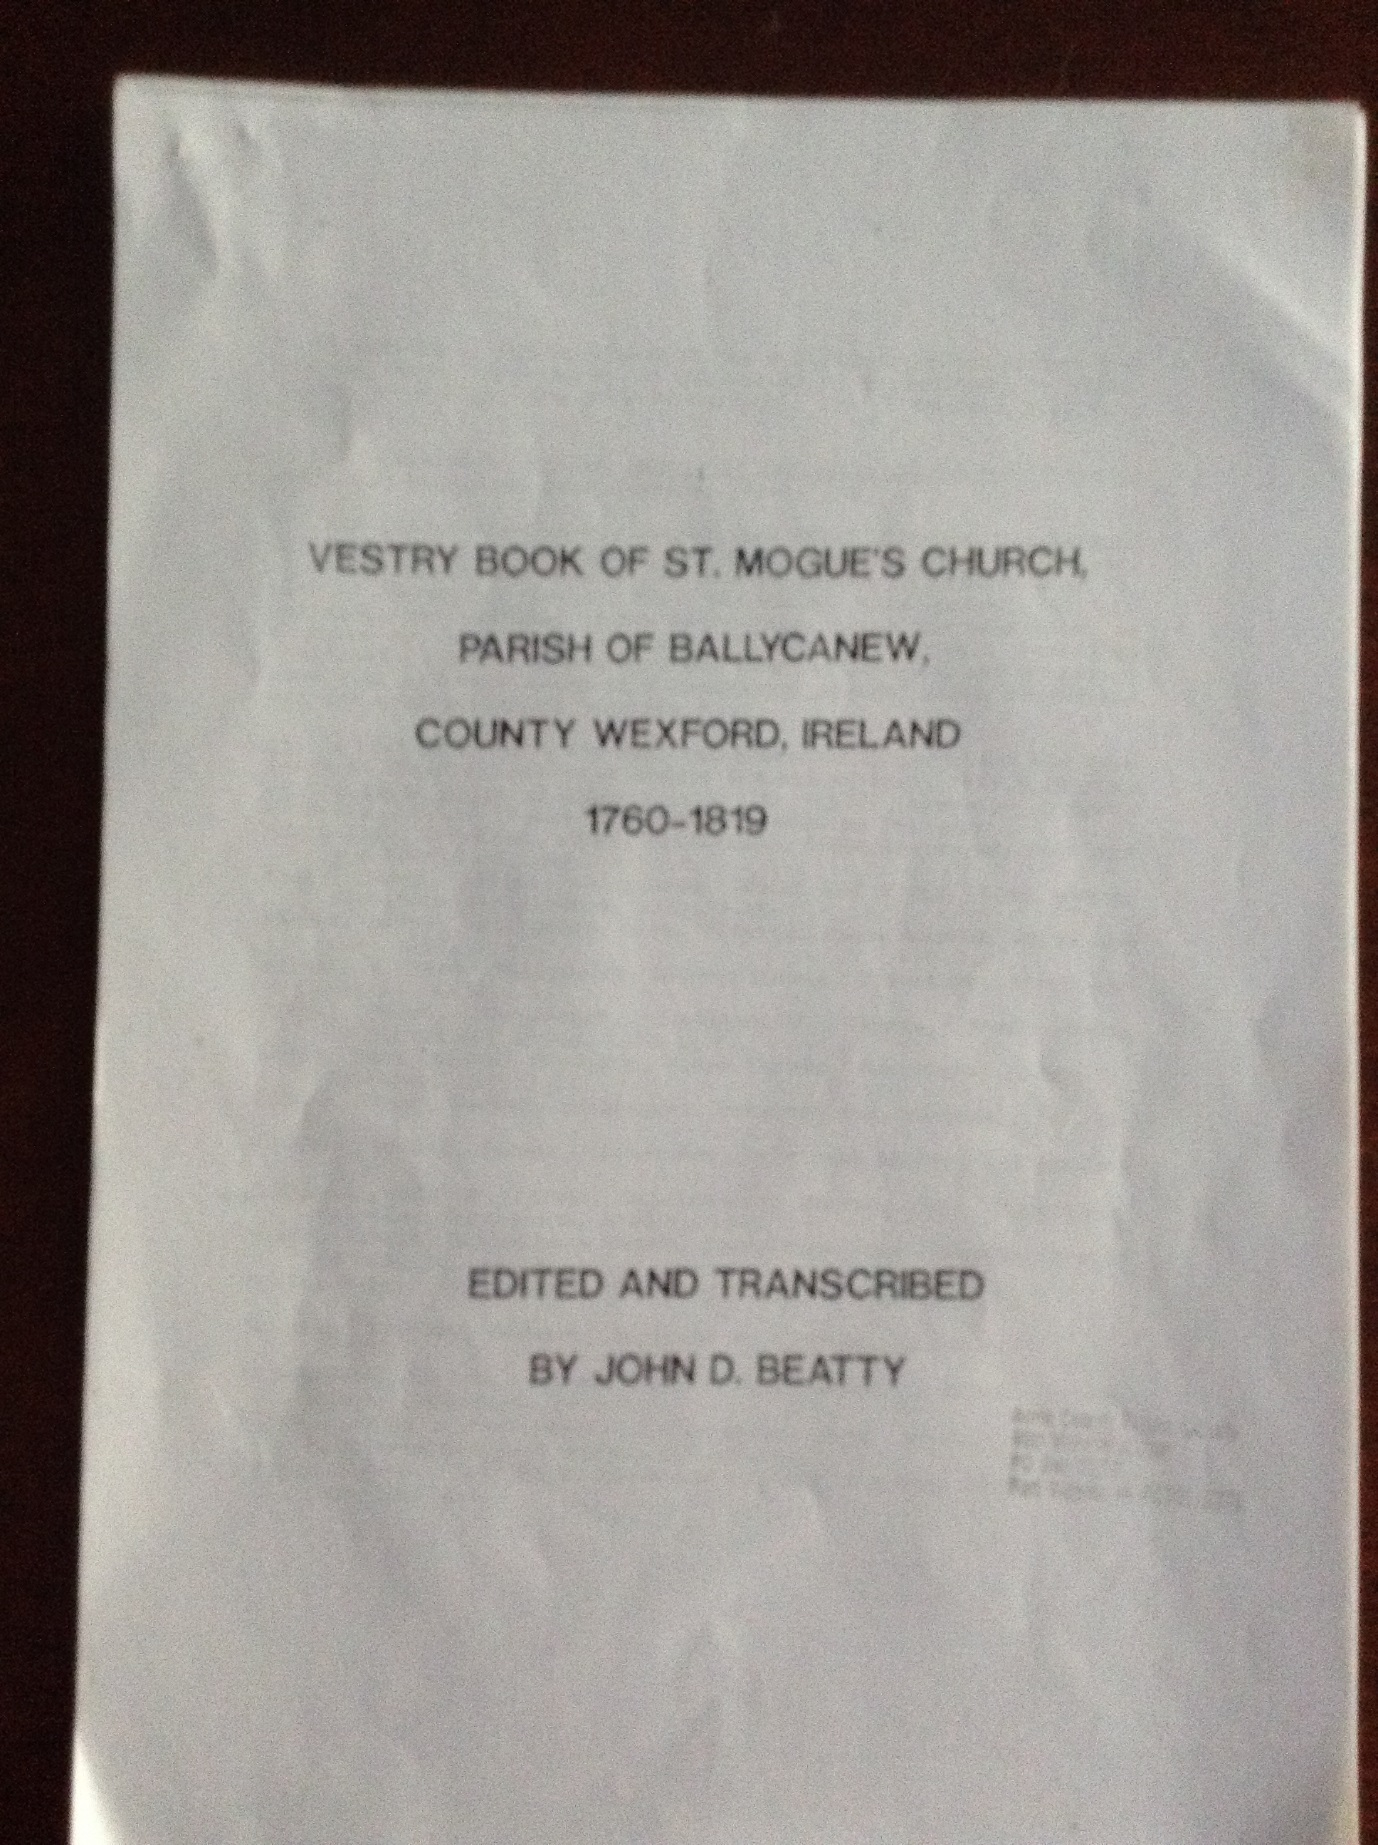 C:\Users\Virginia Rundle\Dropbox\VR\Ancestry Stuff\Kilpatrick\St Mogues Vestry Book with mentions of Cranwill\Front cover of St Mogue's Vestry Book.JPG